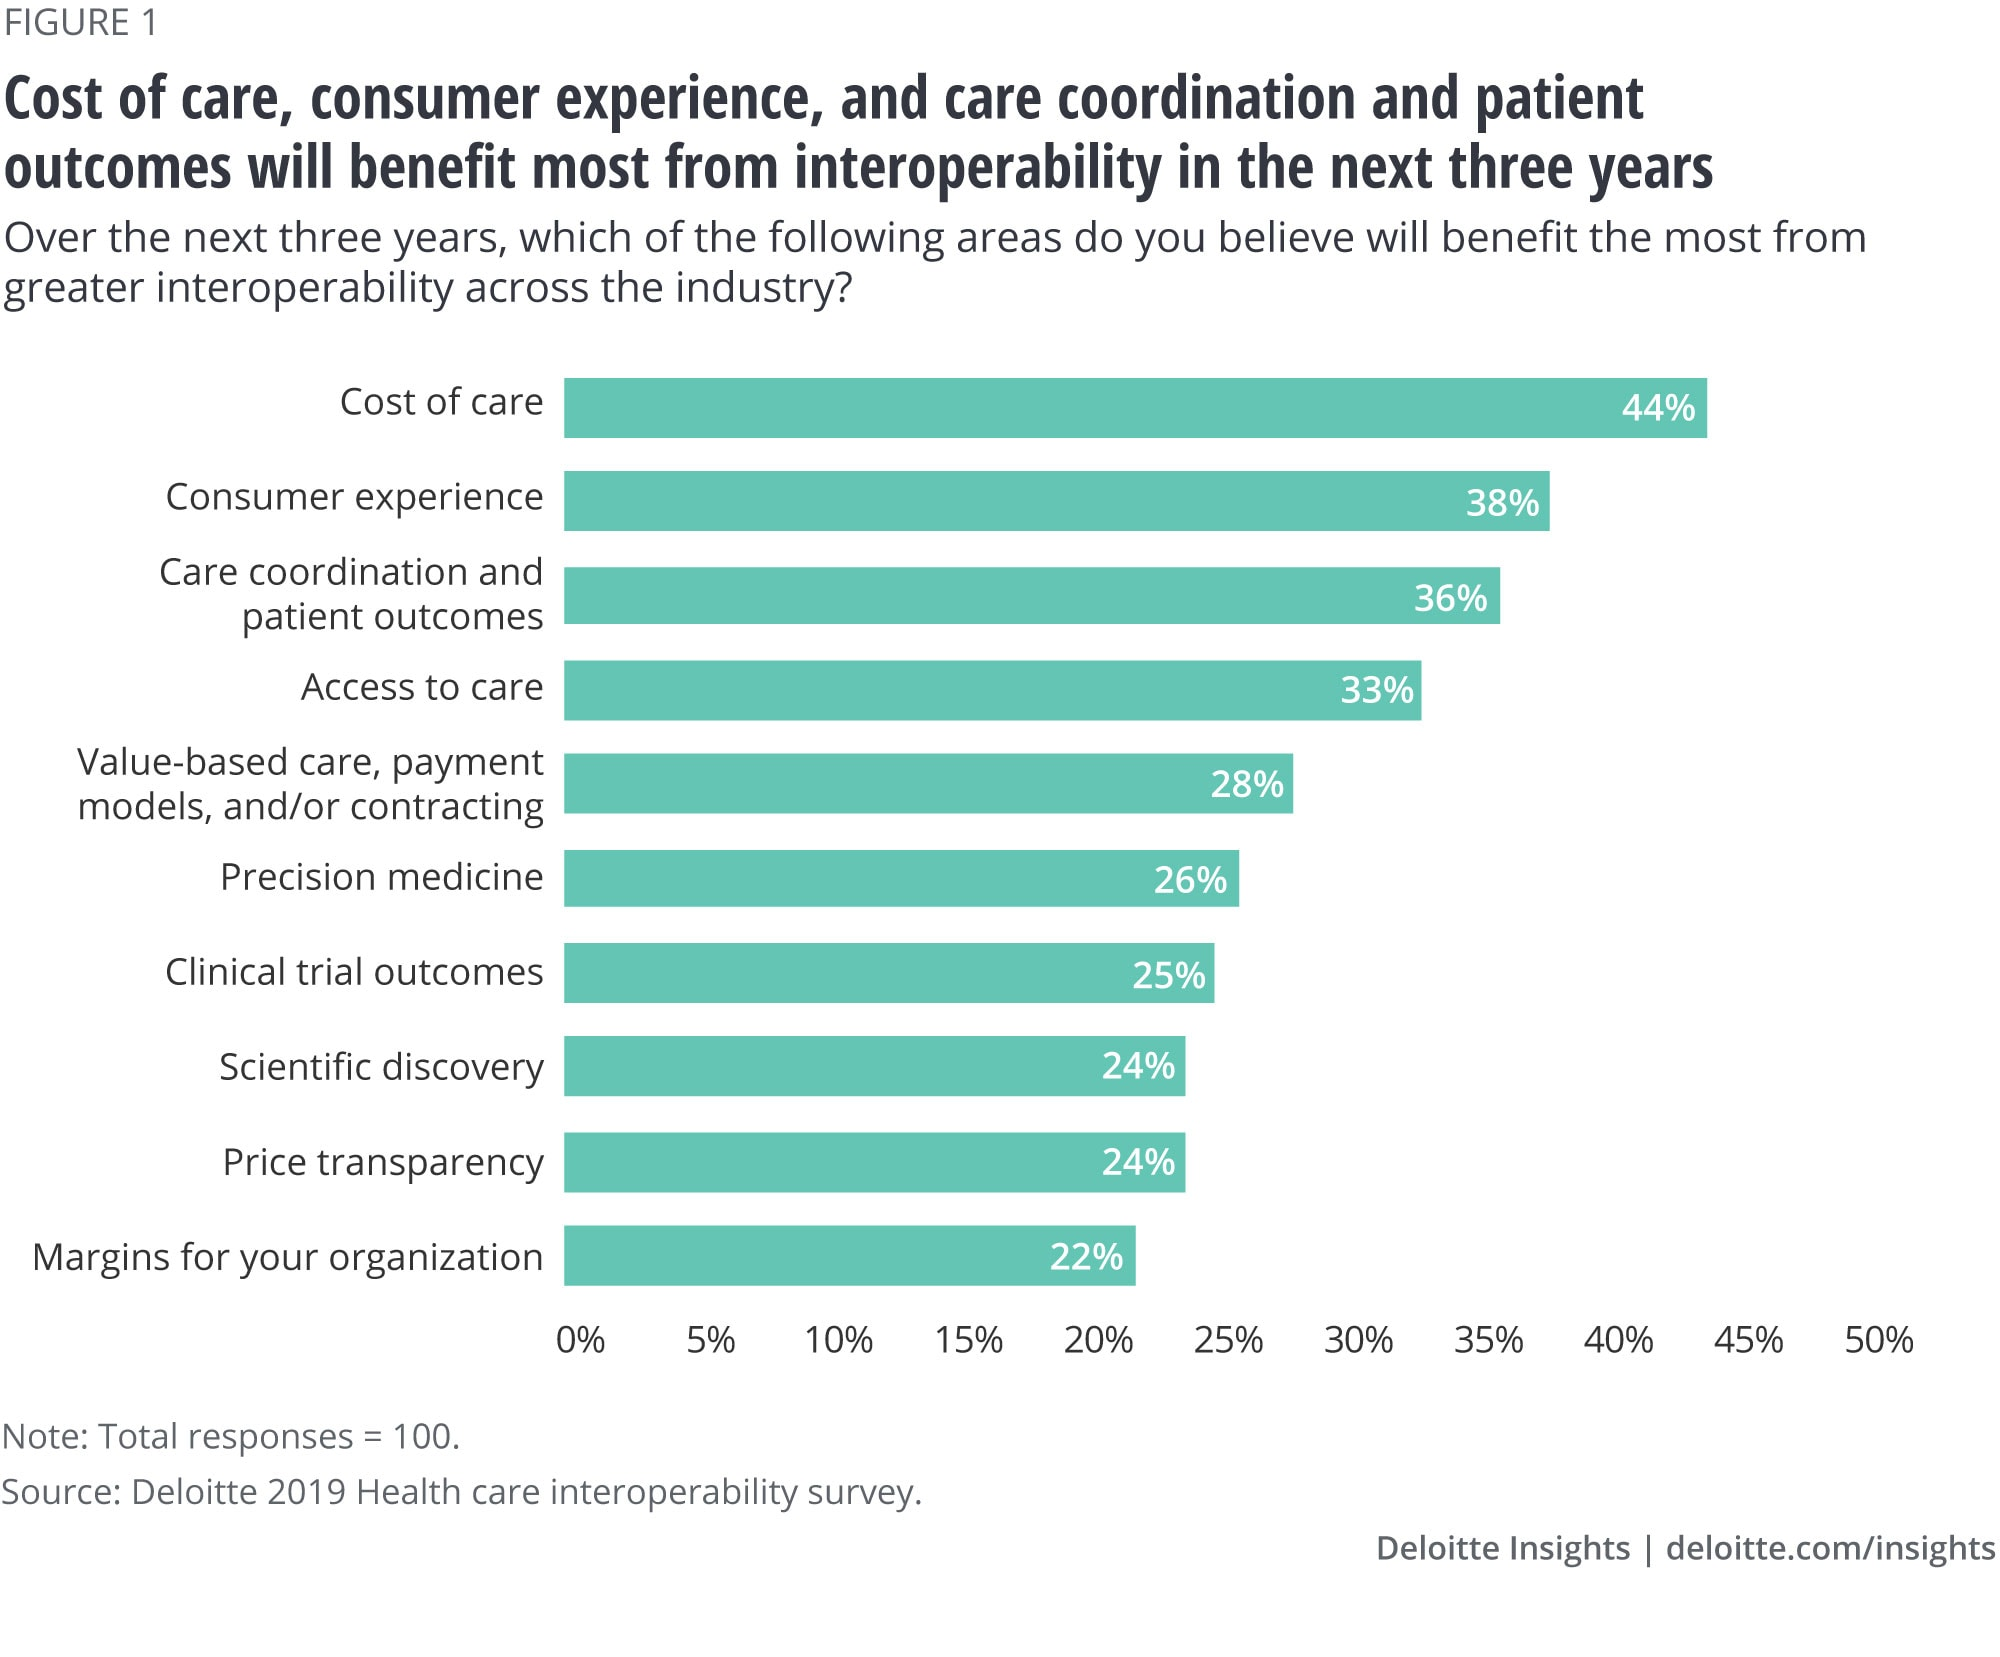 Cost of care, consumer experience, and care coordination, and patient outcomes will benefit the most from greater interoperability across the industry in the next three years